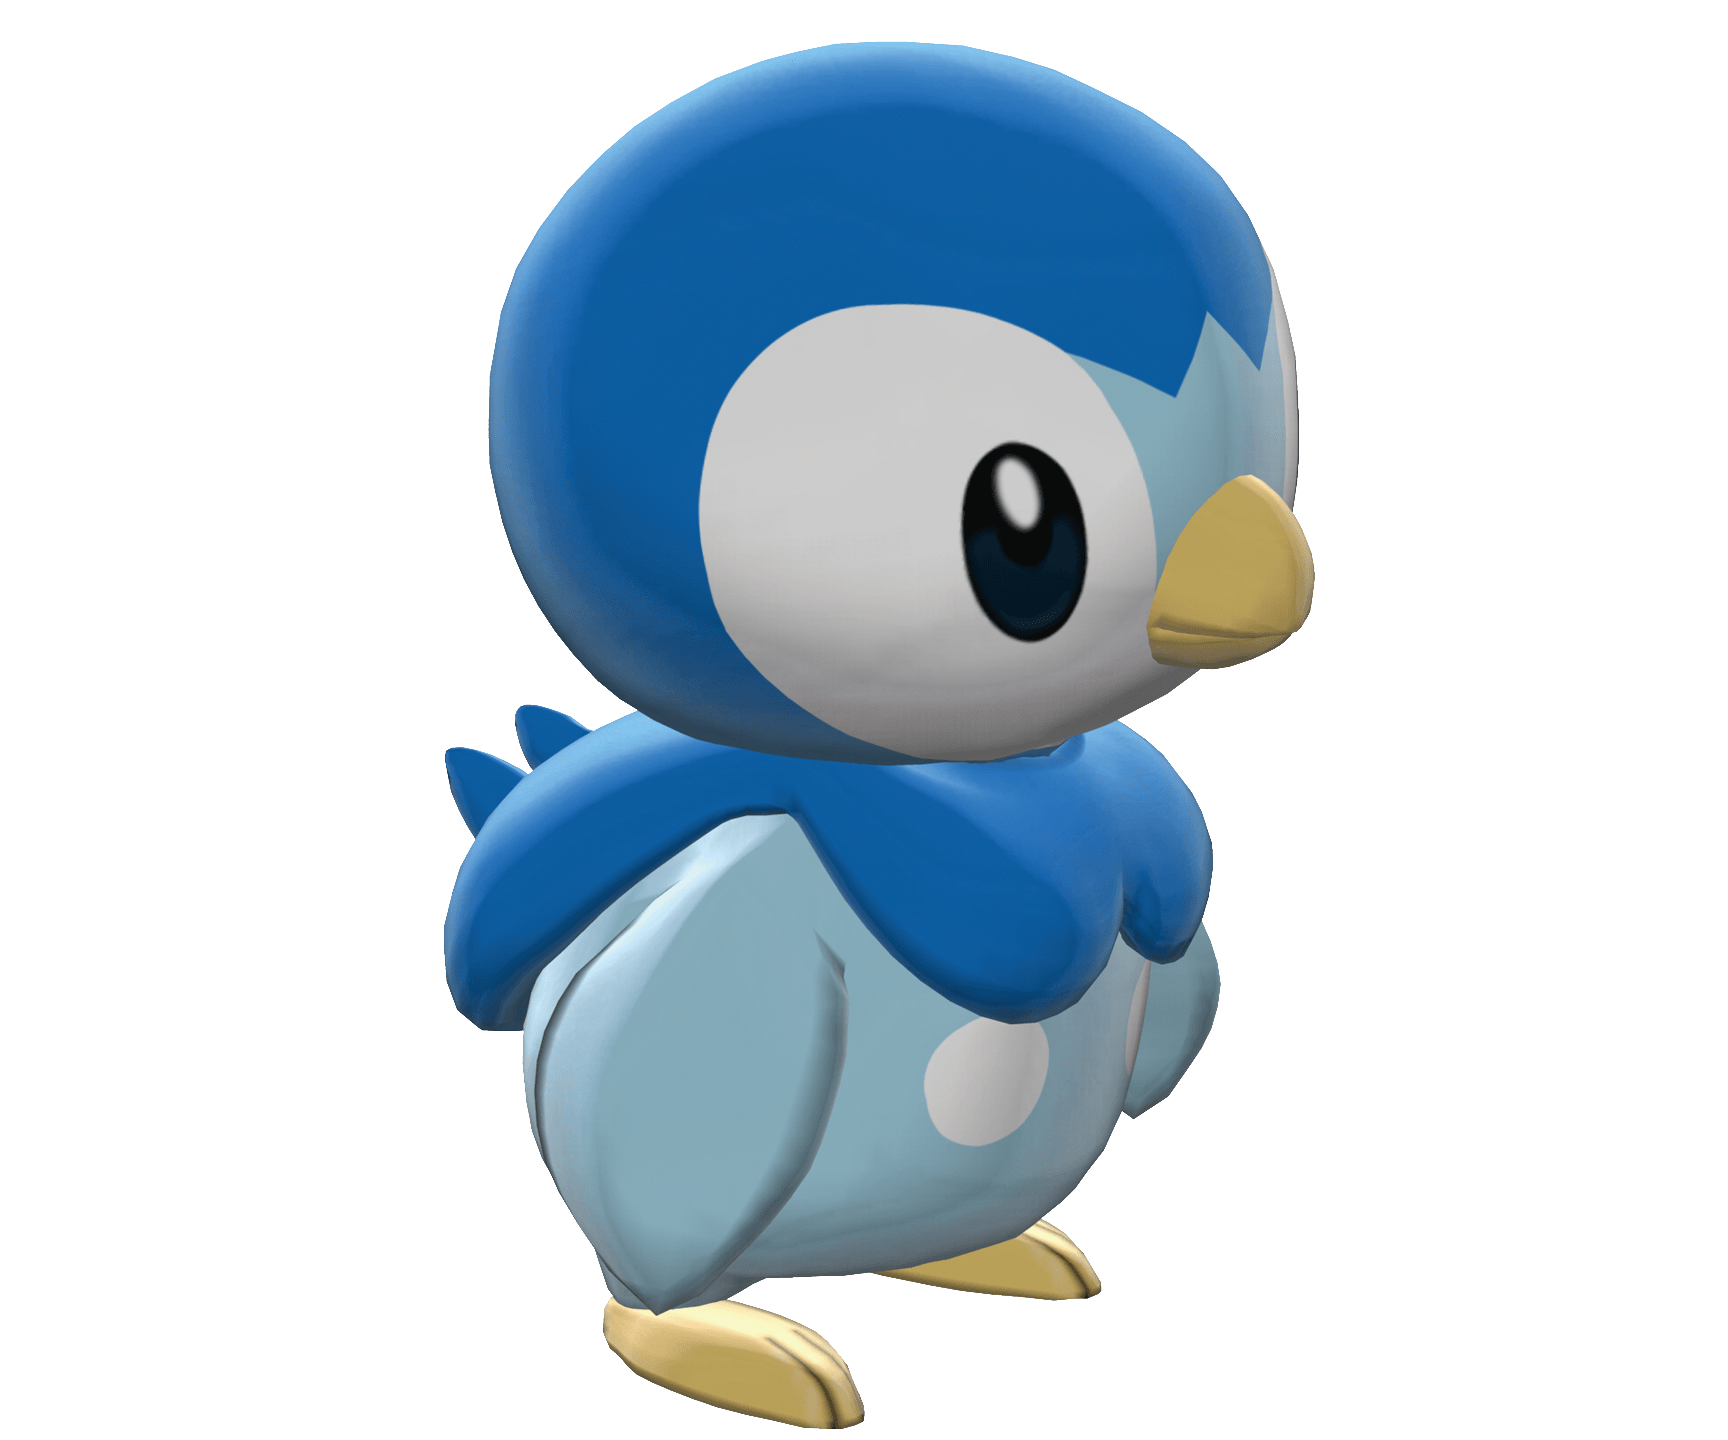 Pokemon clipart bird. Piplup sideview transparent png